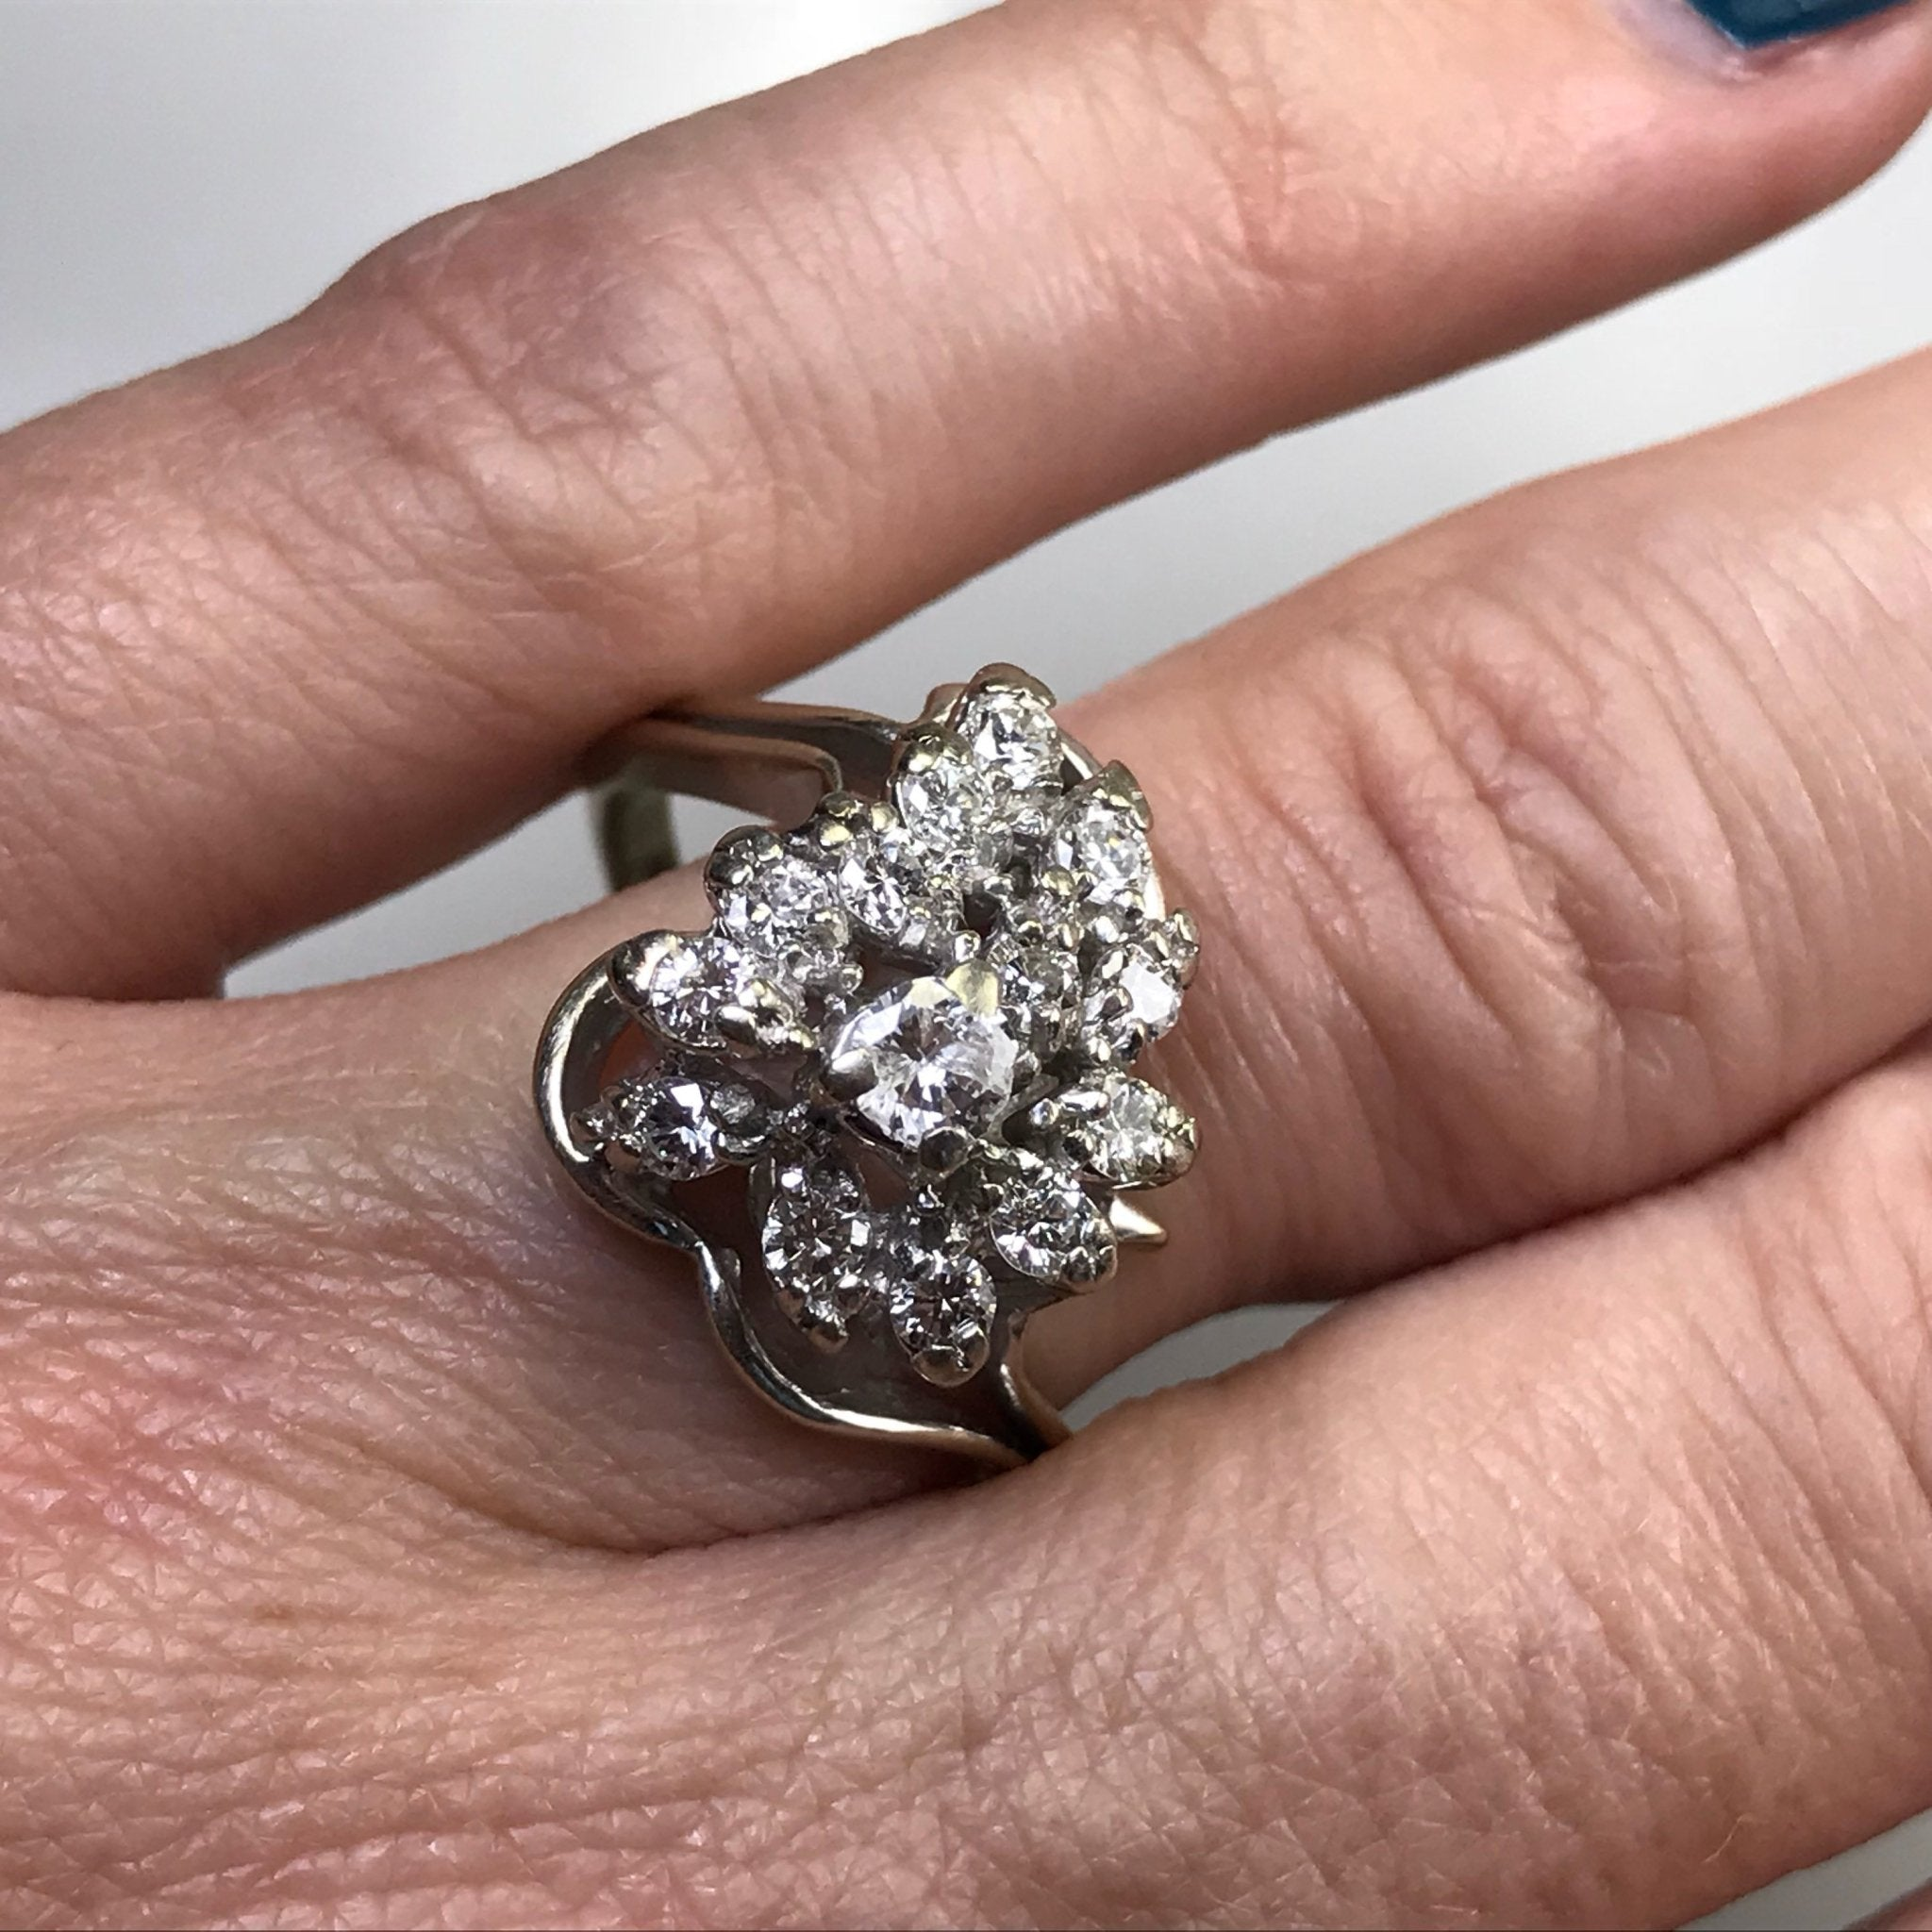 14K White Gold Diamond Cluster Ring Vintage Estate Jewelry. 10 Year Anniversary Gift Unique Engagement Ring April Birthstone